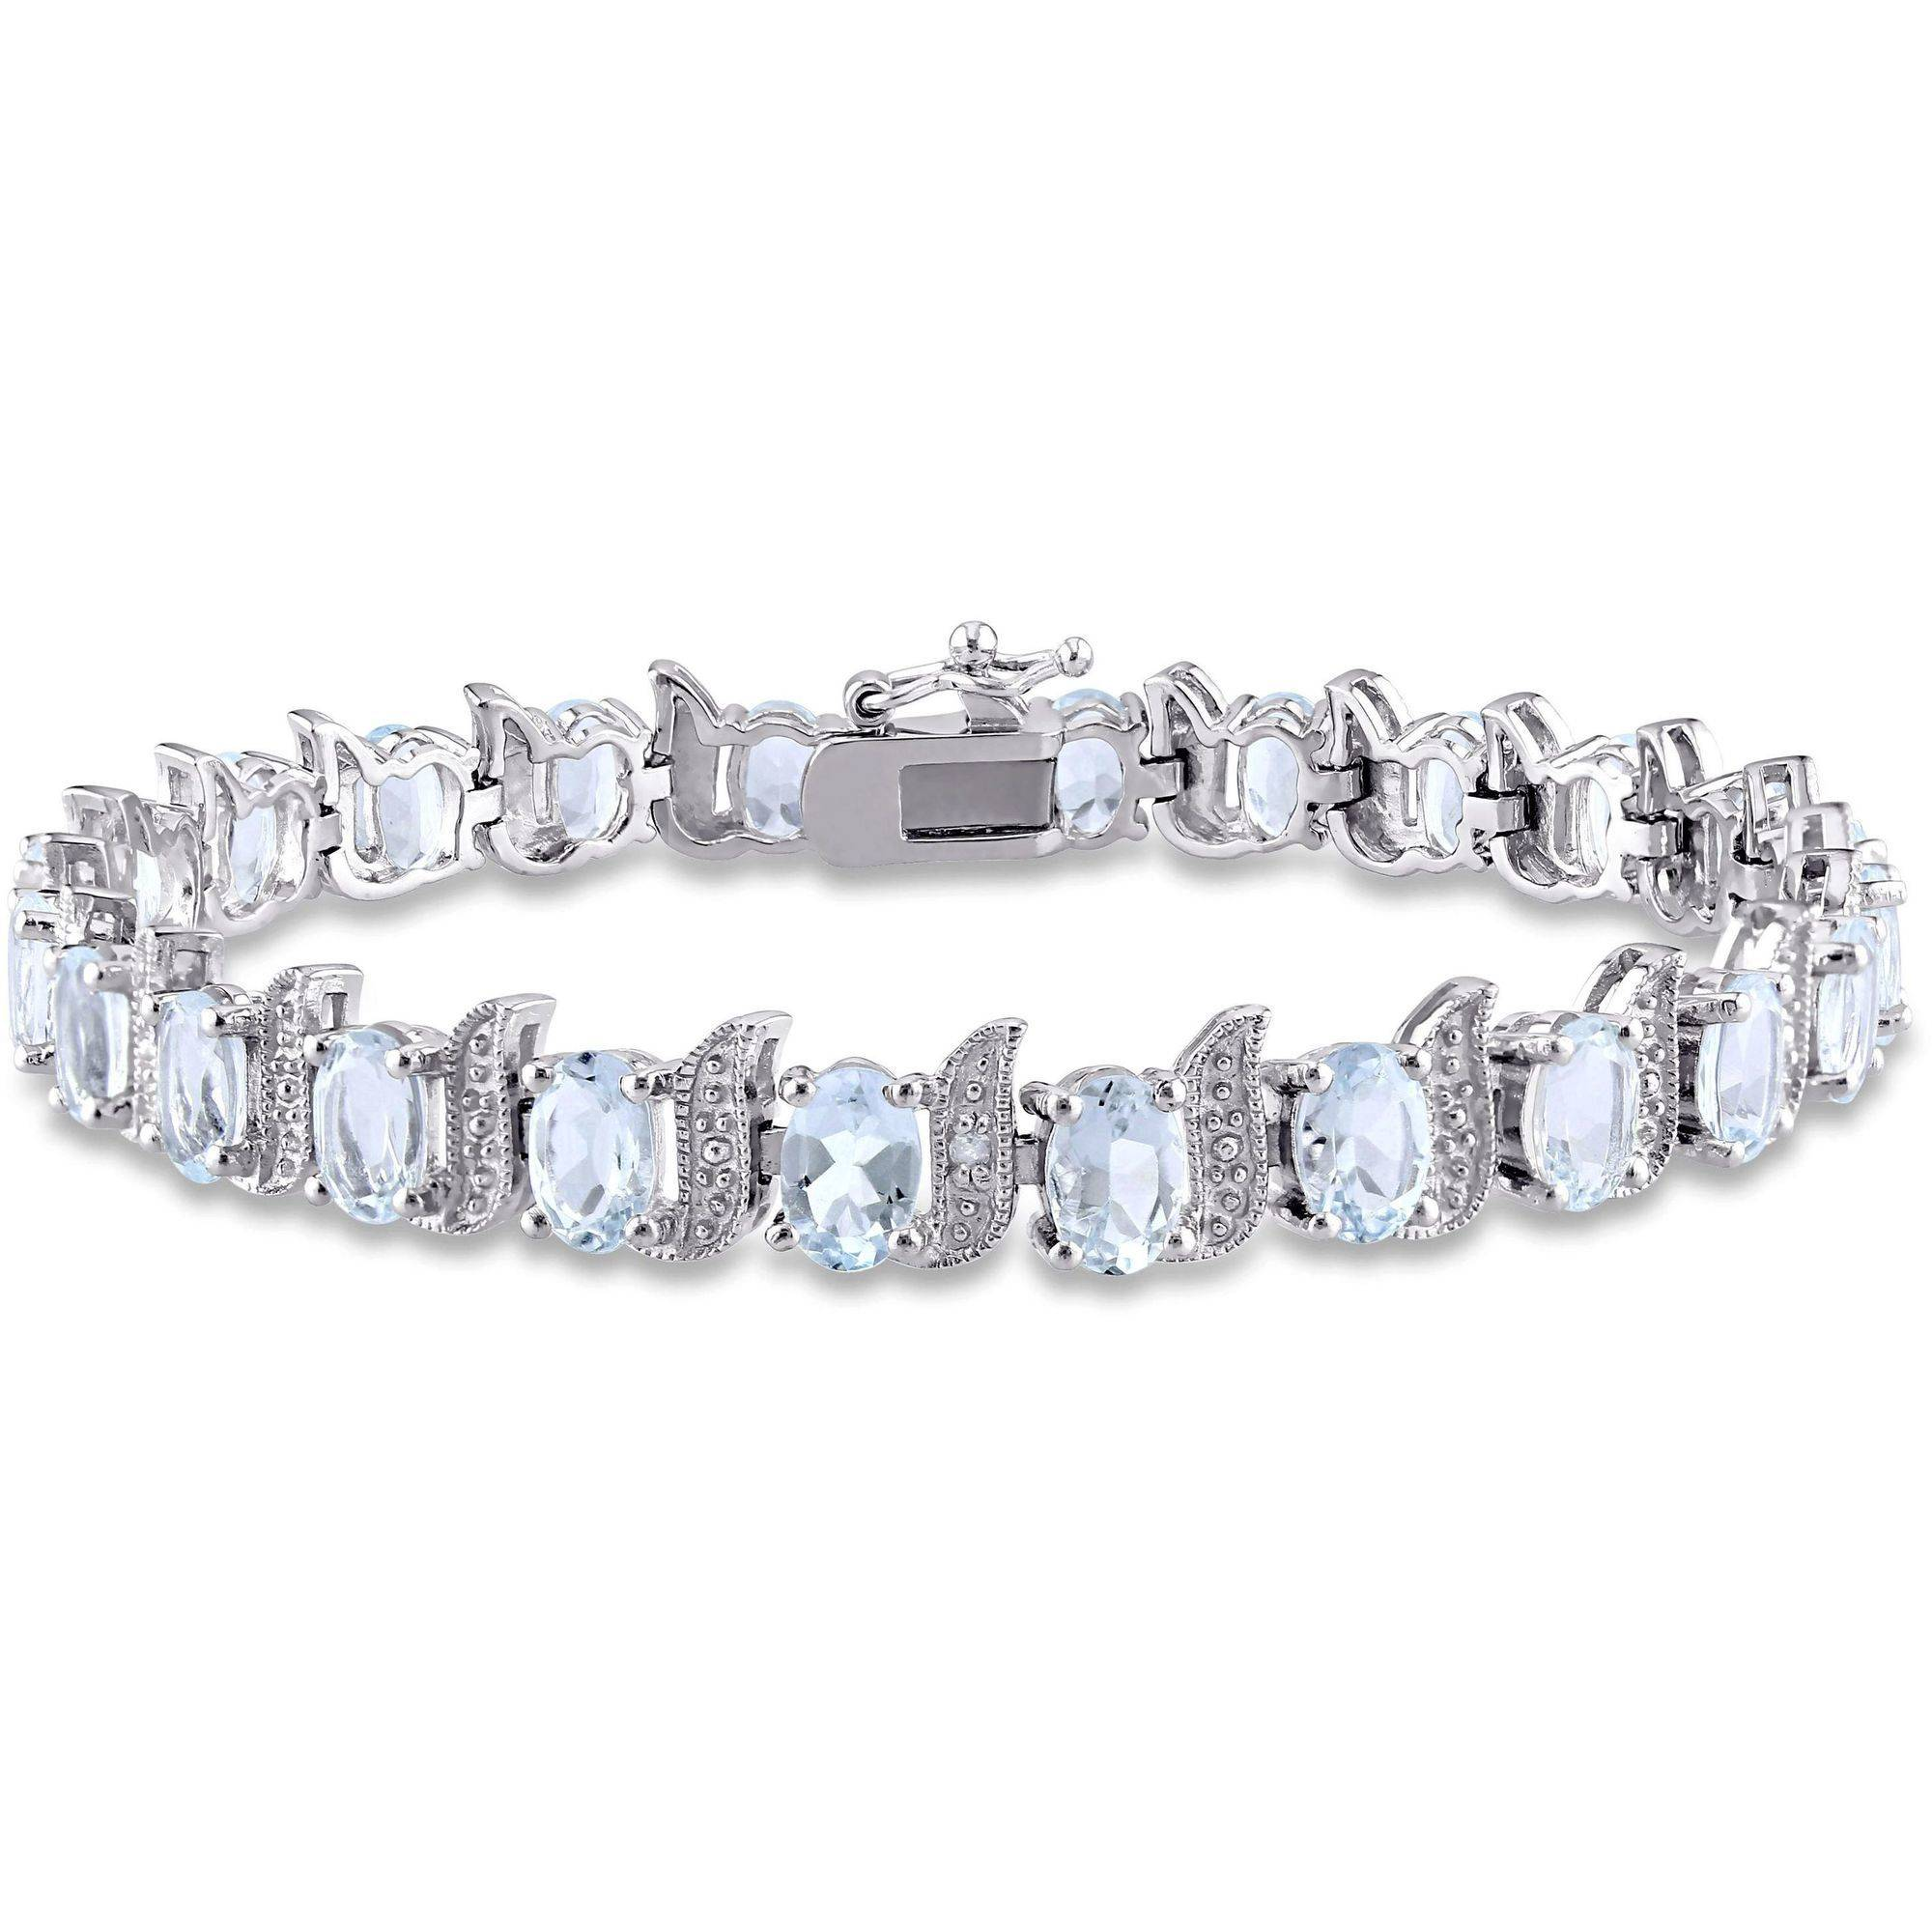 """Tangelo 9-5 8 Carat T.G.W. Aquamarine and Diamond-Accent Sterling Silver Tennis Bracelet, 7"""" by Tangelo"""